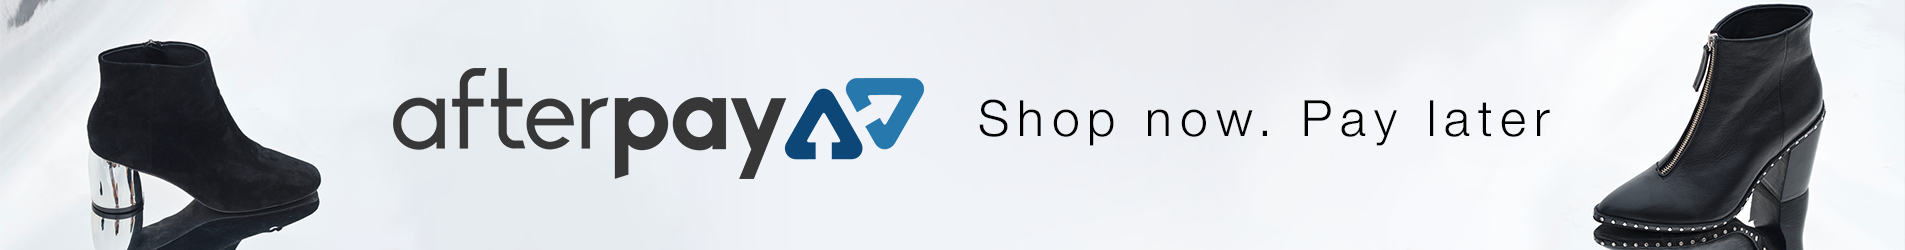 afterpay - shop now - pay later